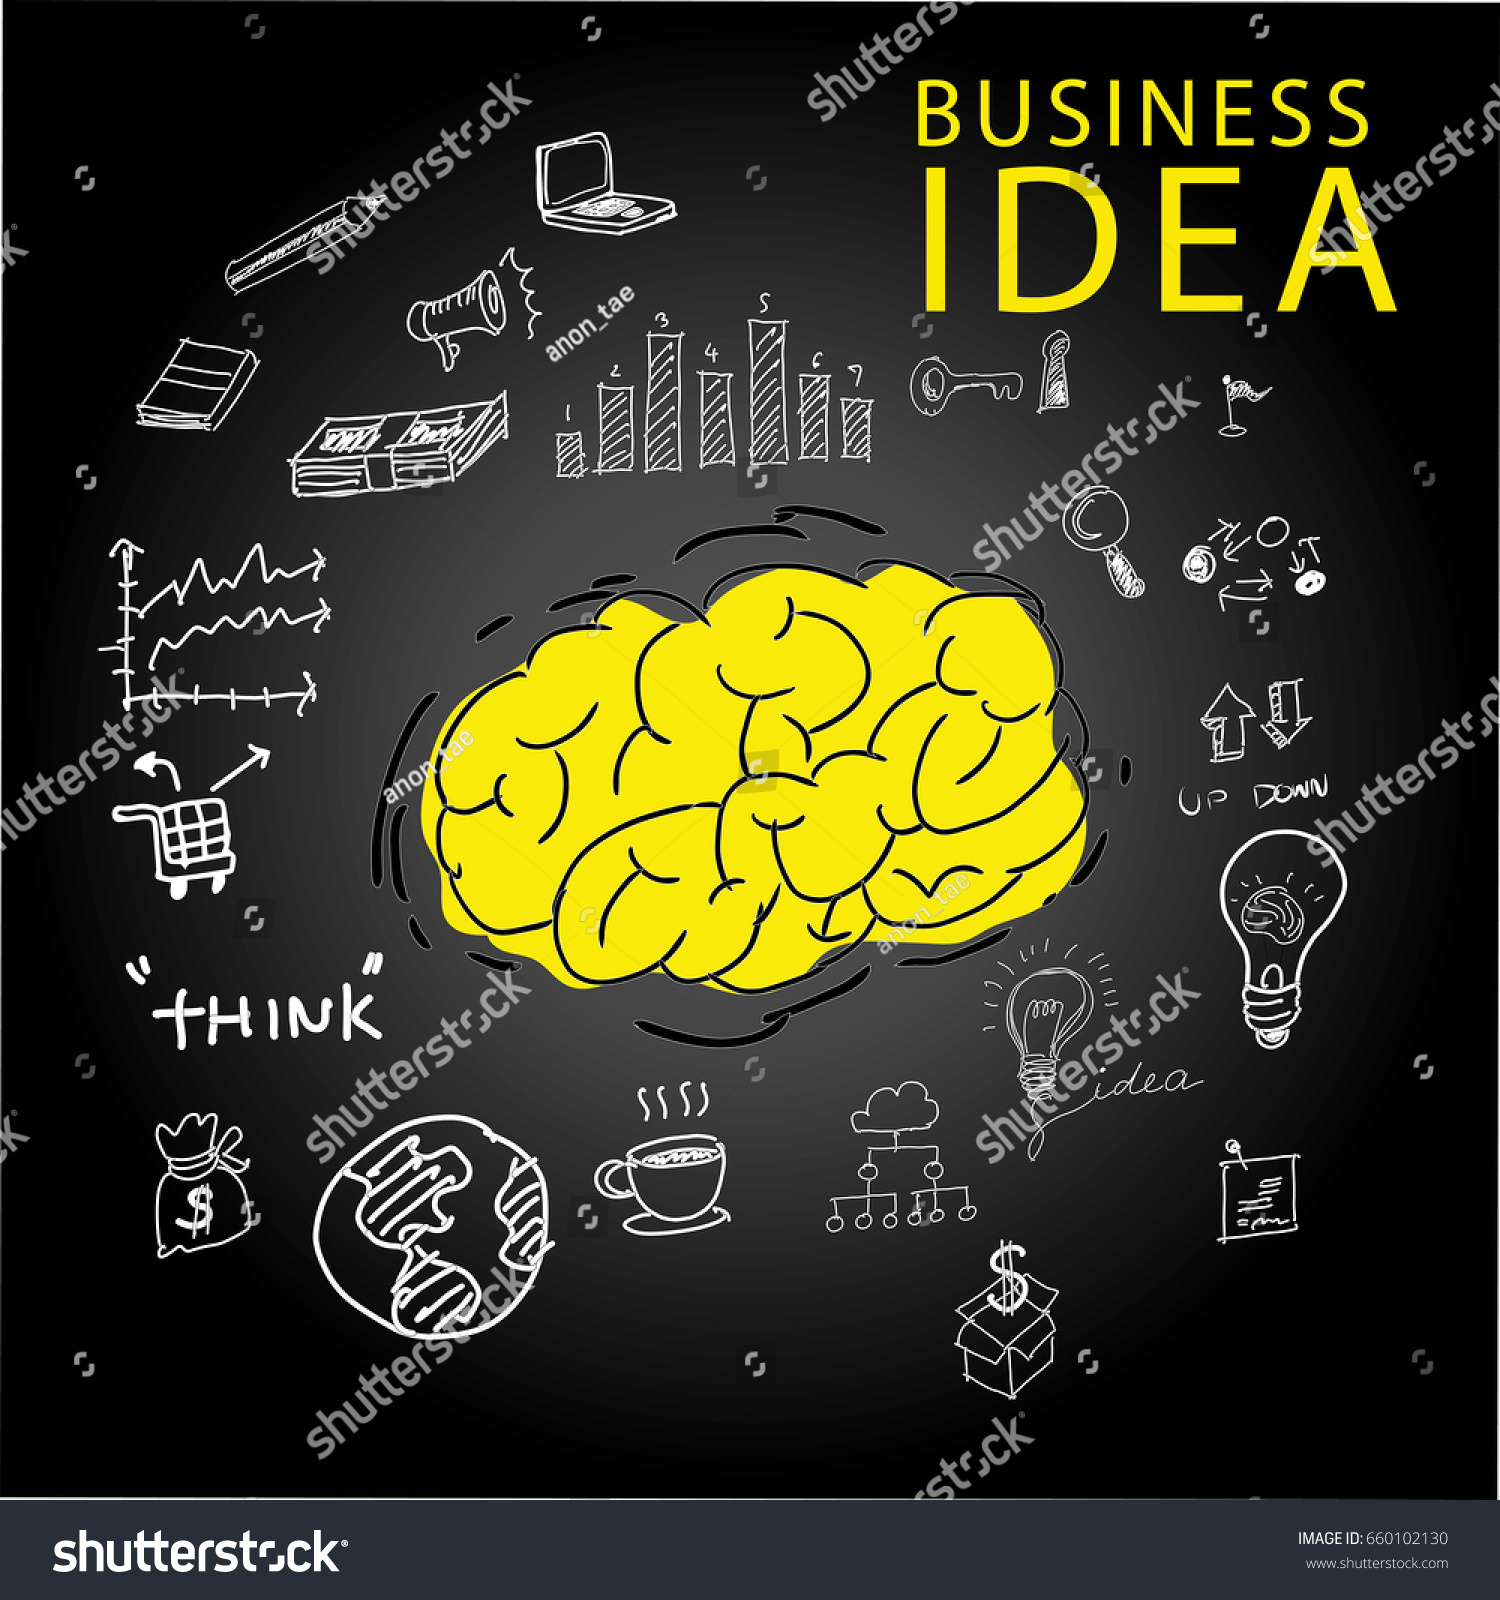 Free hand sketch business idea brain stock vector 660102130 free hand sketch business idea brain symbol of ideaslor icon biocorpaavc Images